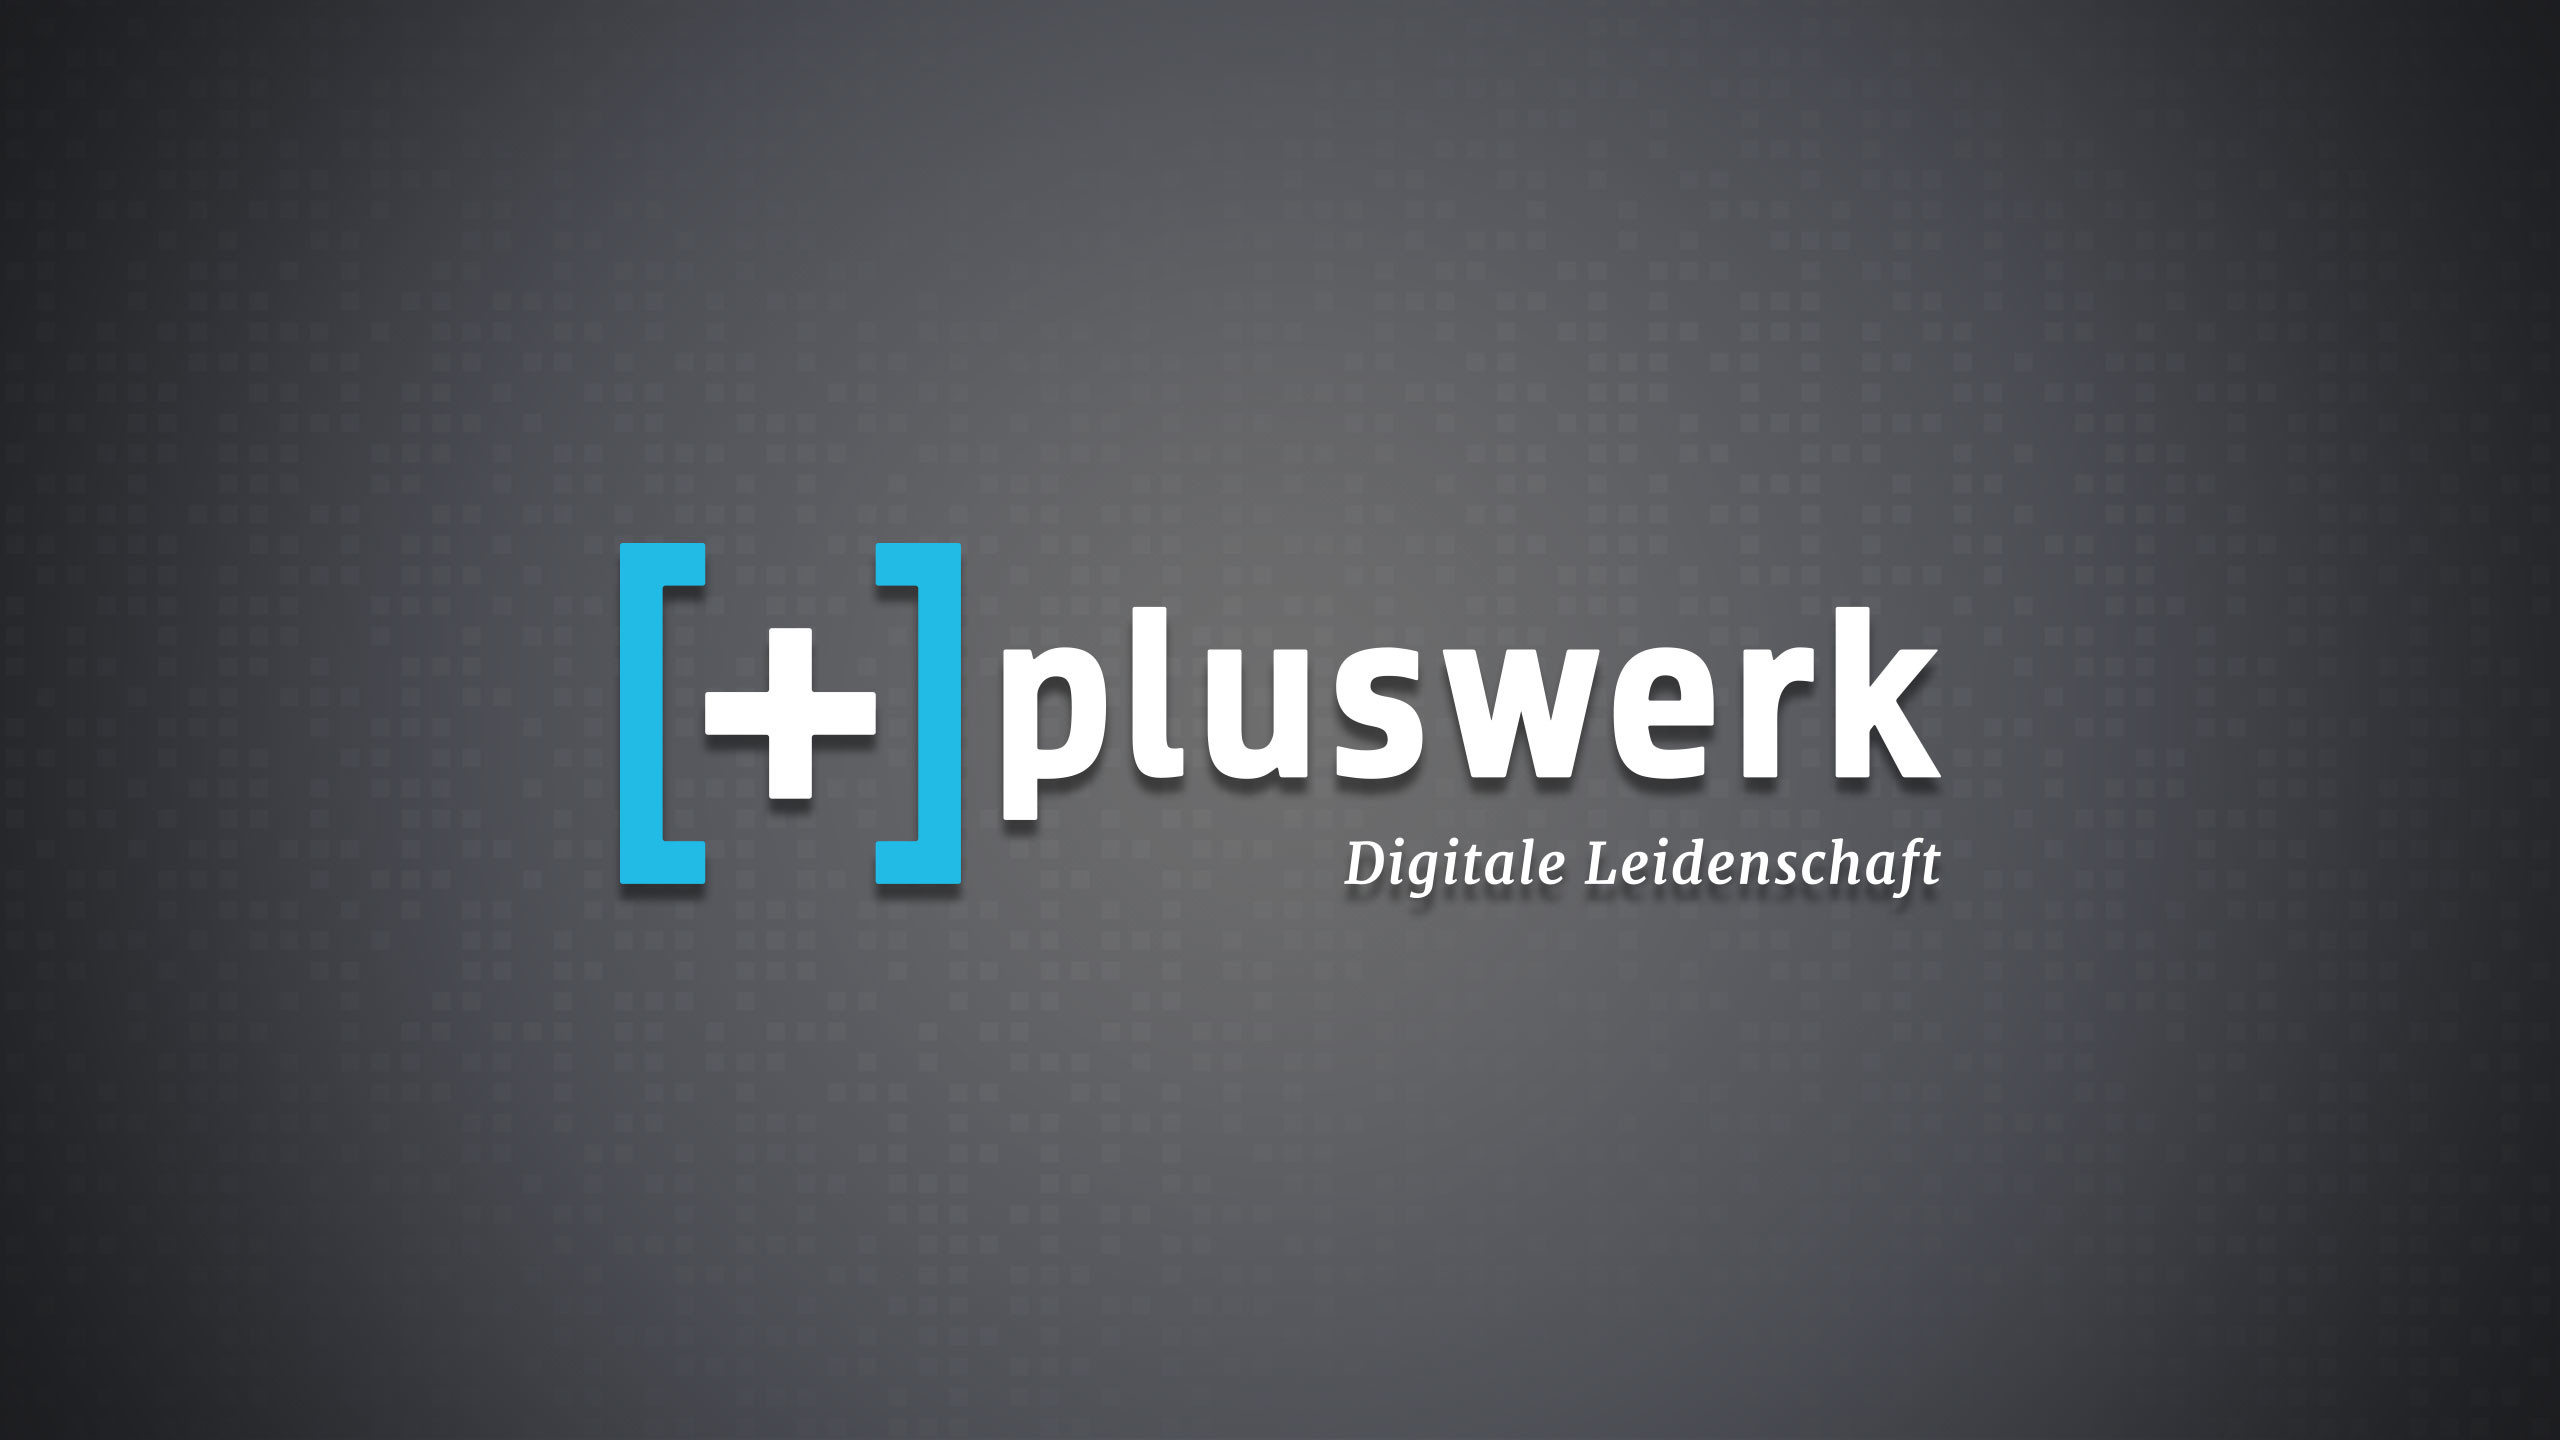 +Pluswerk - Digitale Leidenschaft